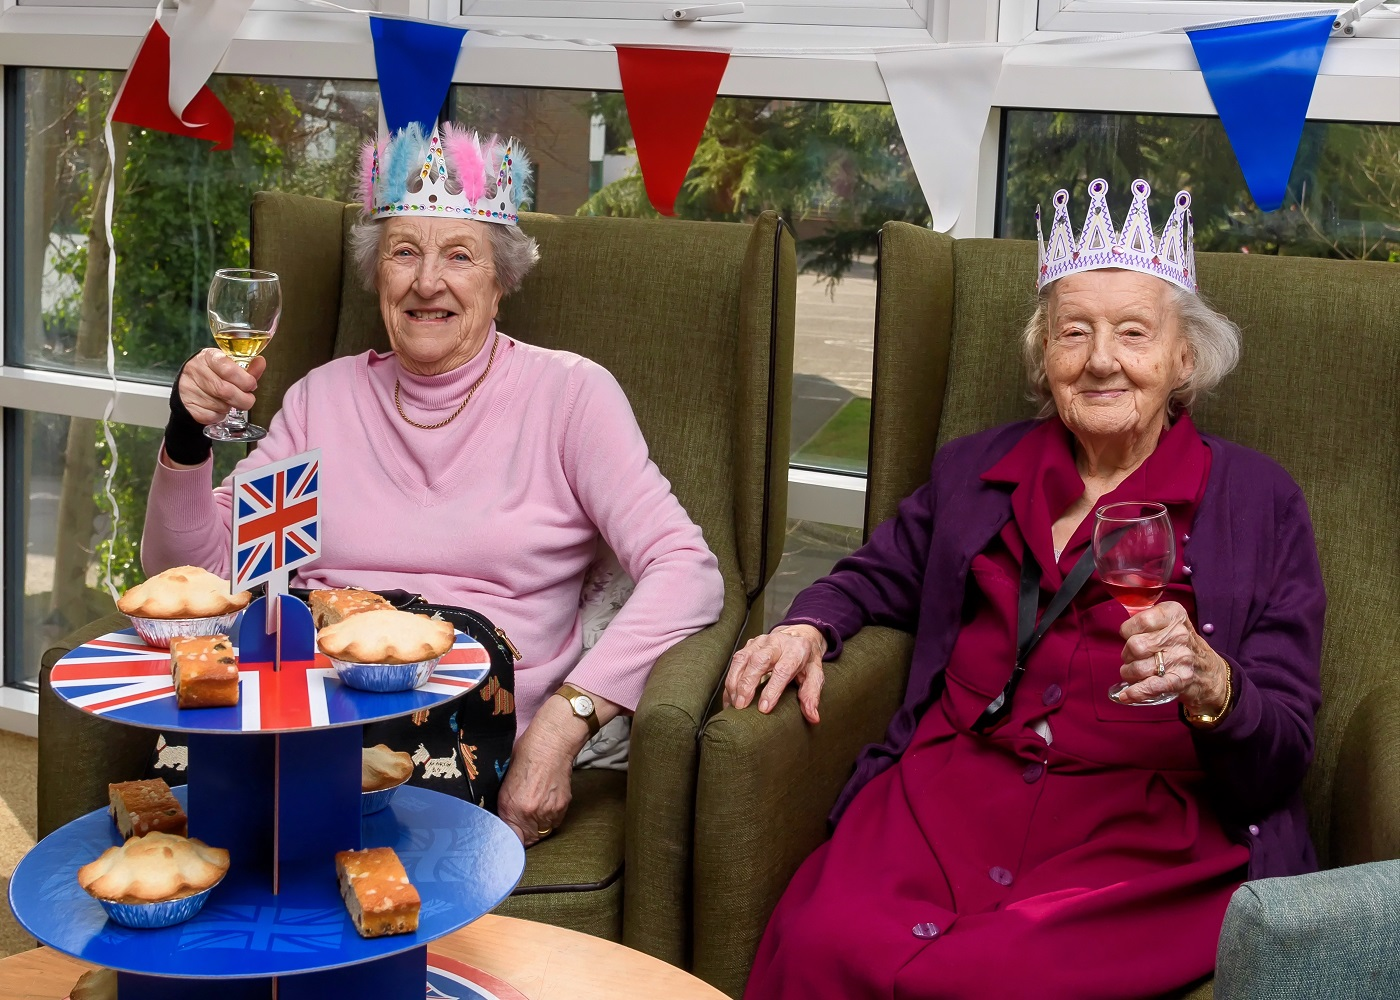 Join Ashford care home for a royal celebration this Care Home Open Day